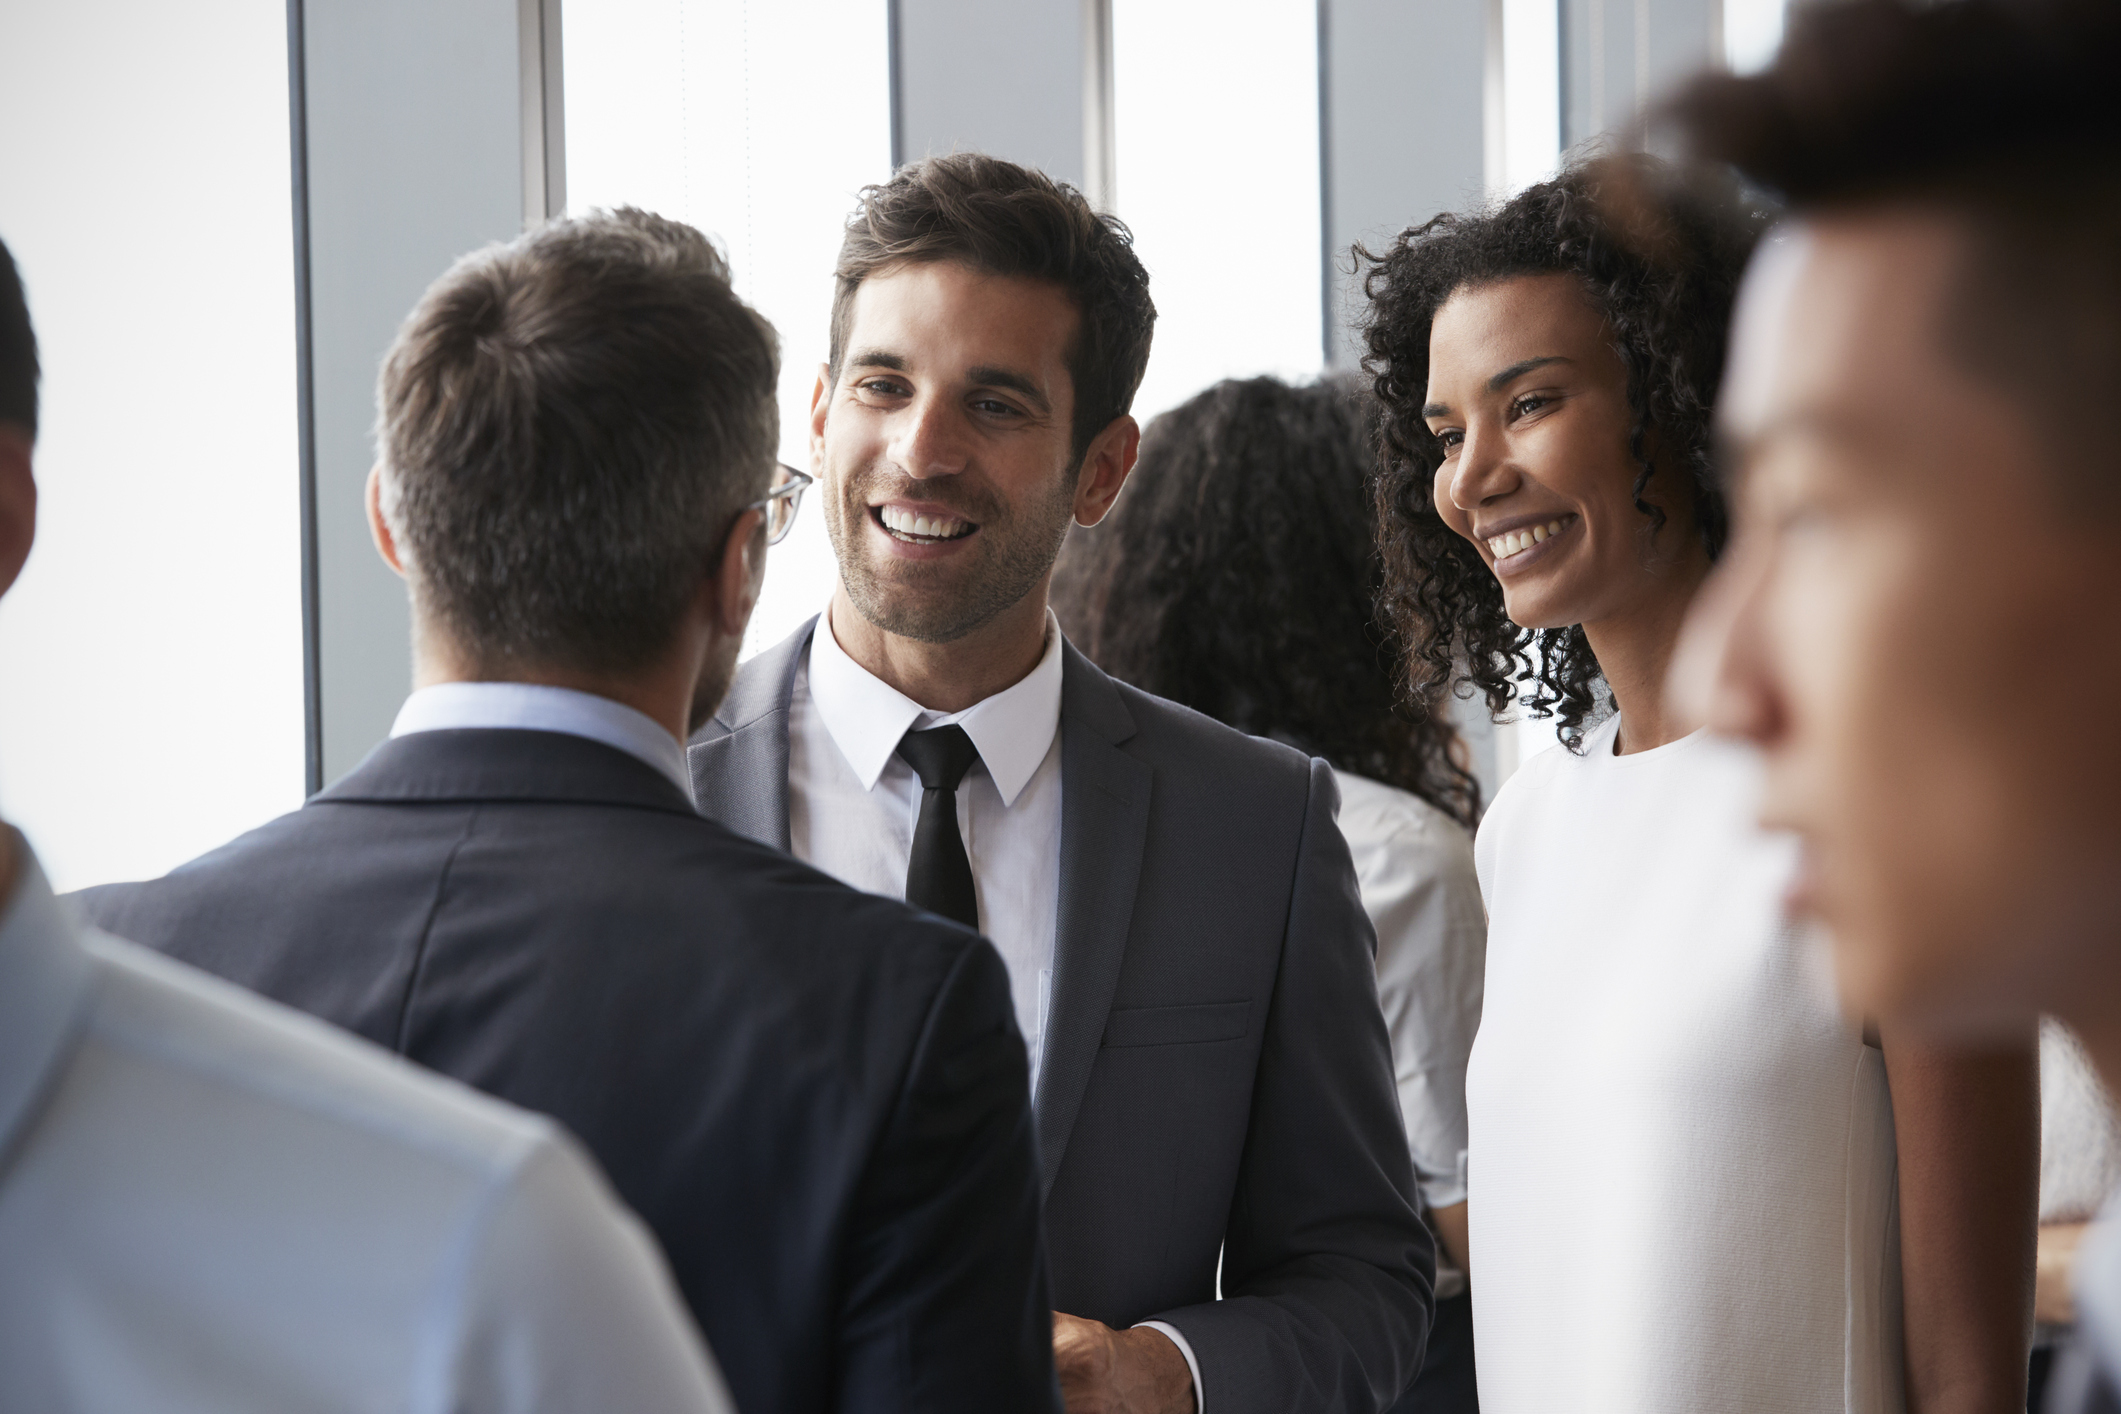 Navigating Networking in the Age of Social Media